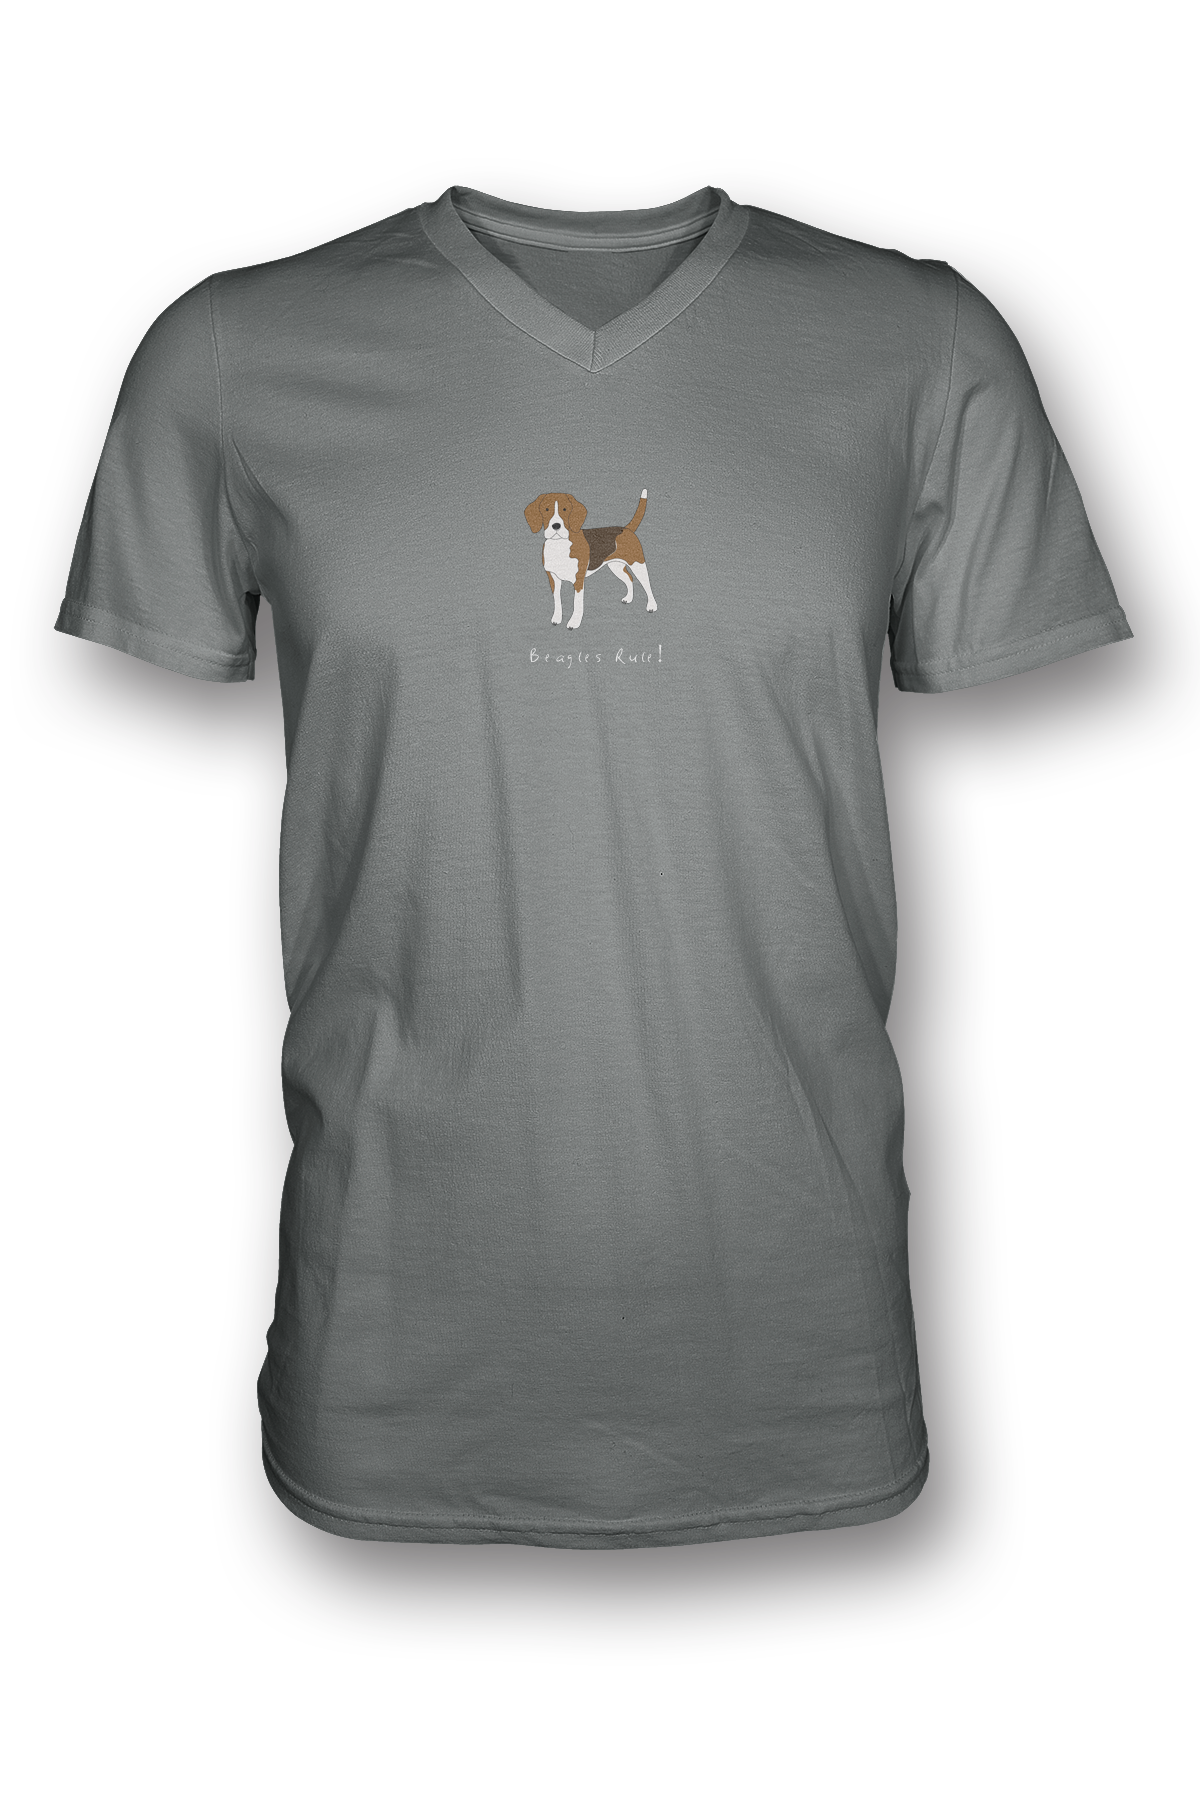 Mens V Neck T-Shirt - Beagles Rule!